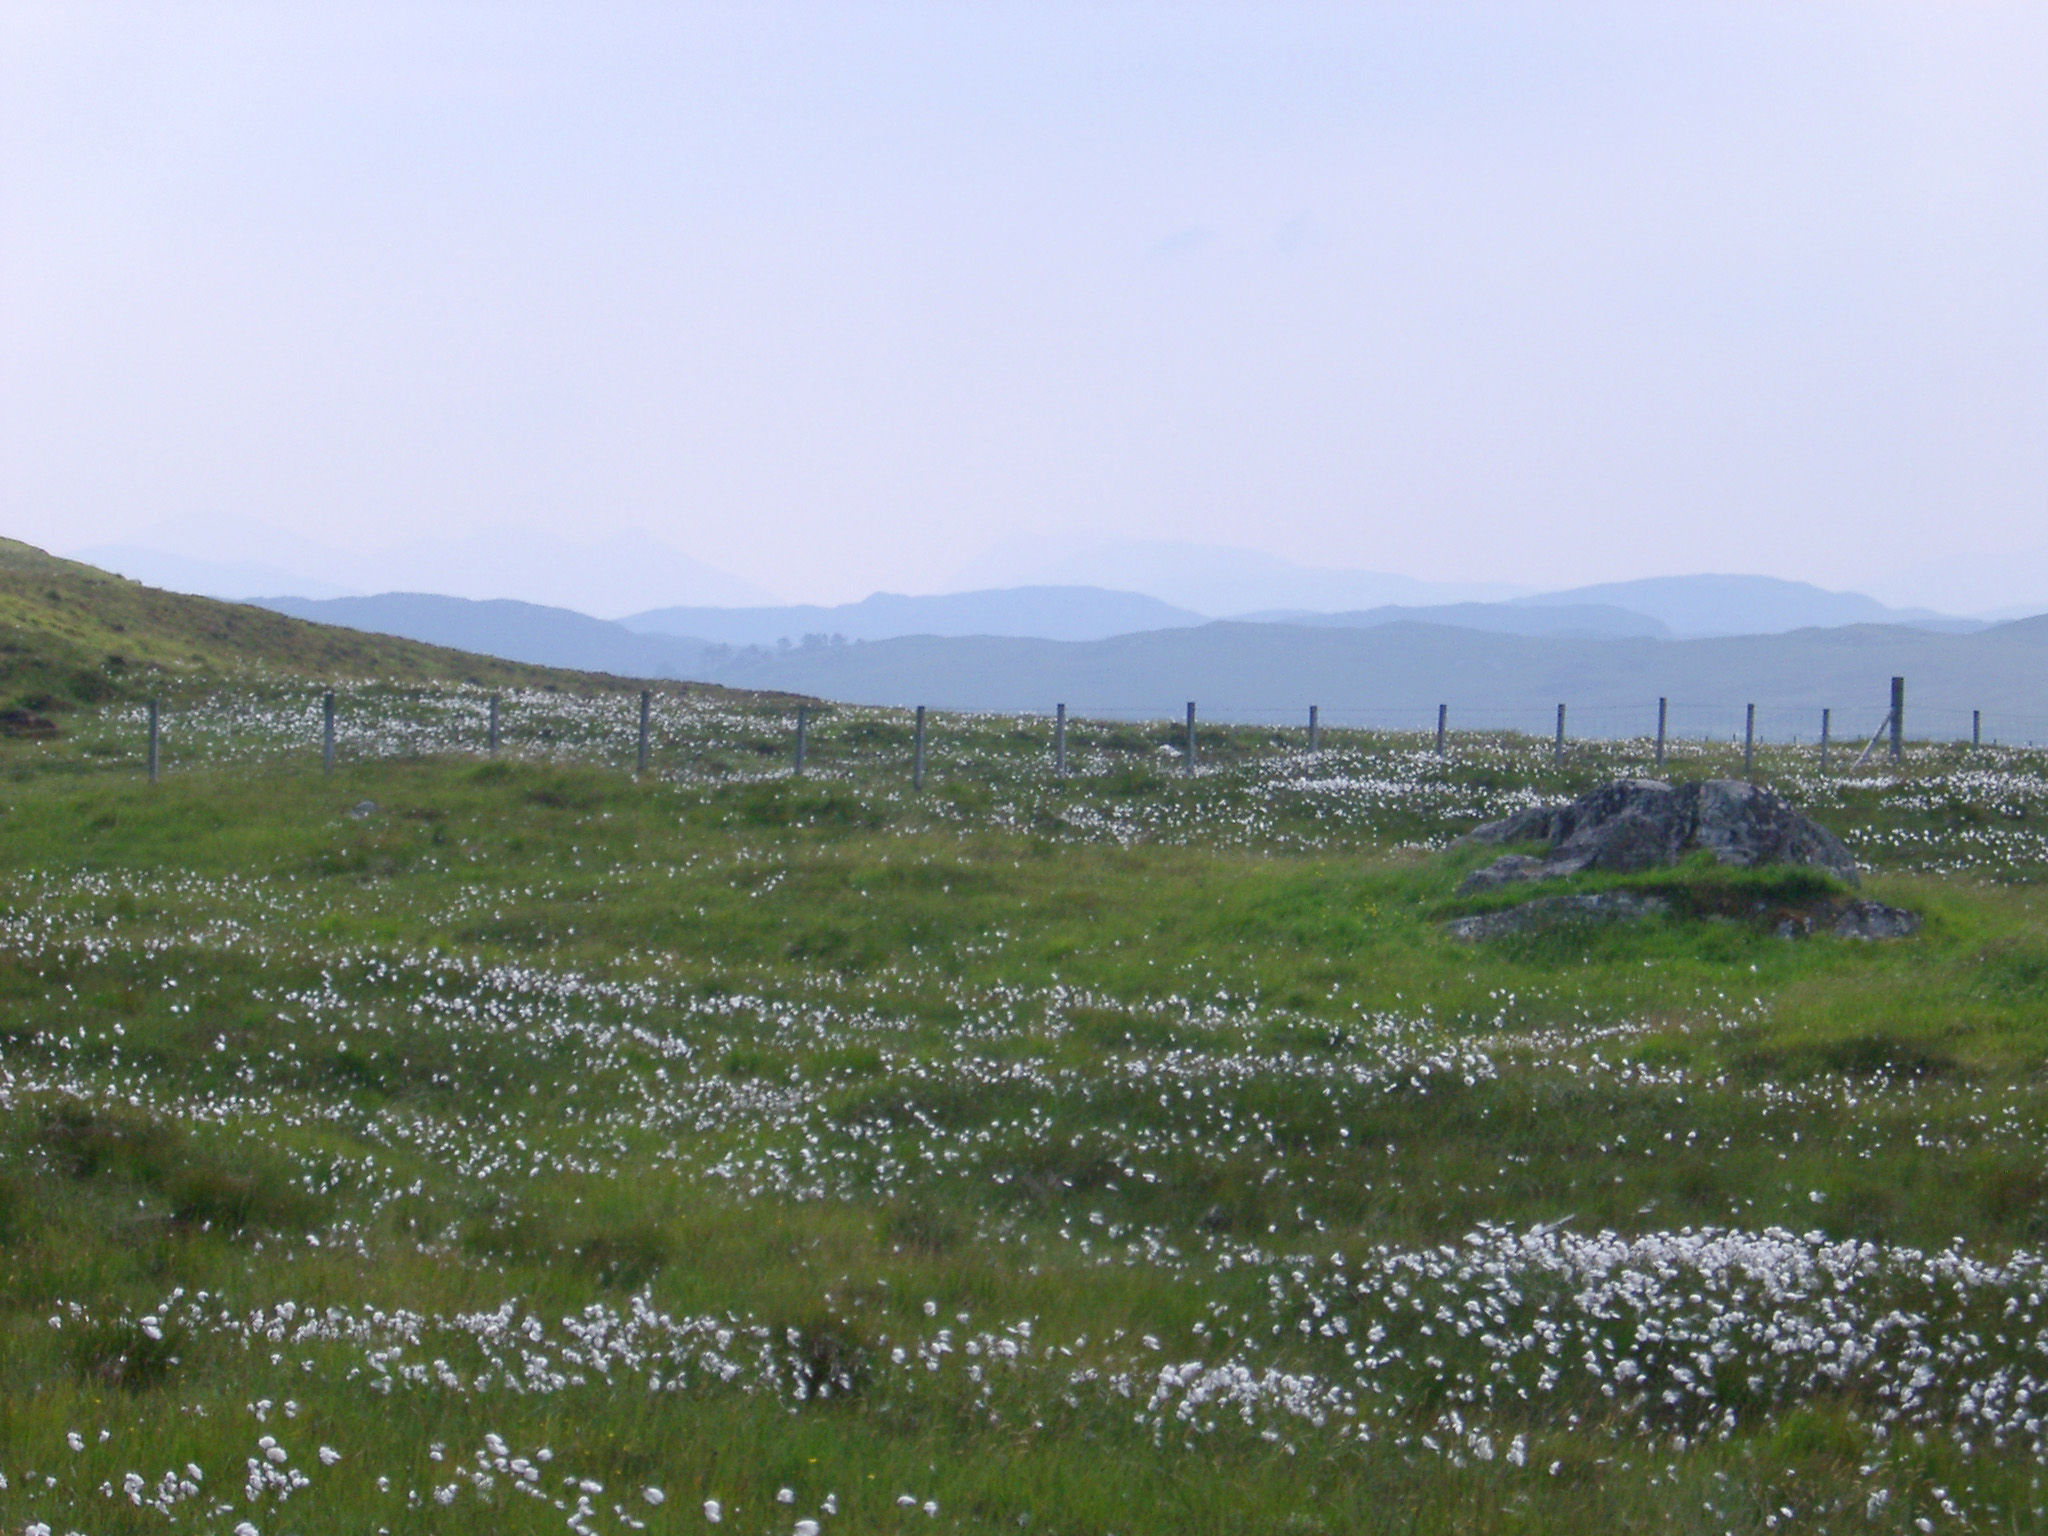 Rural scenic landscape with flax wild flowers on a green grassy meadow, with remote mountain range at the horizon, under a serene blue sky